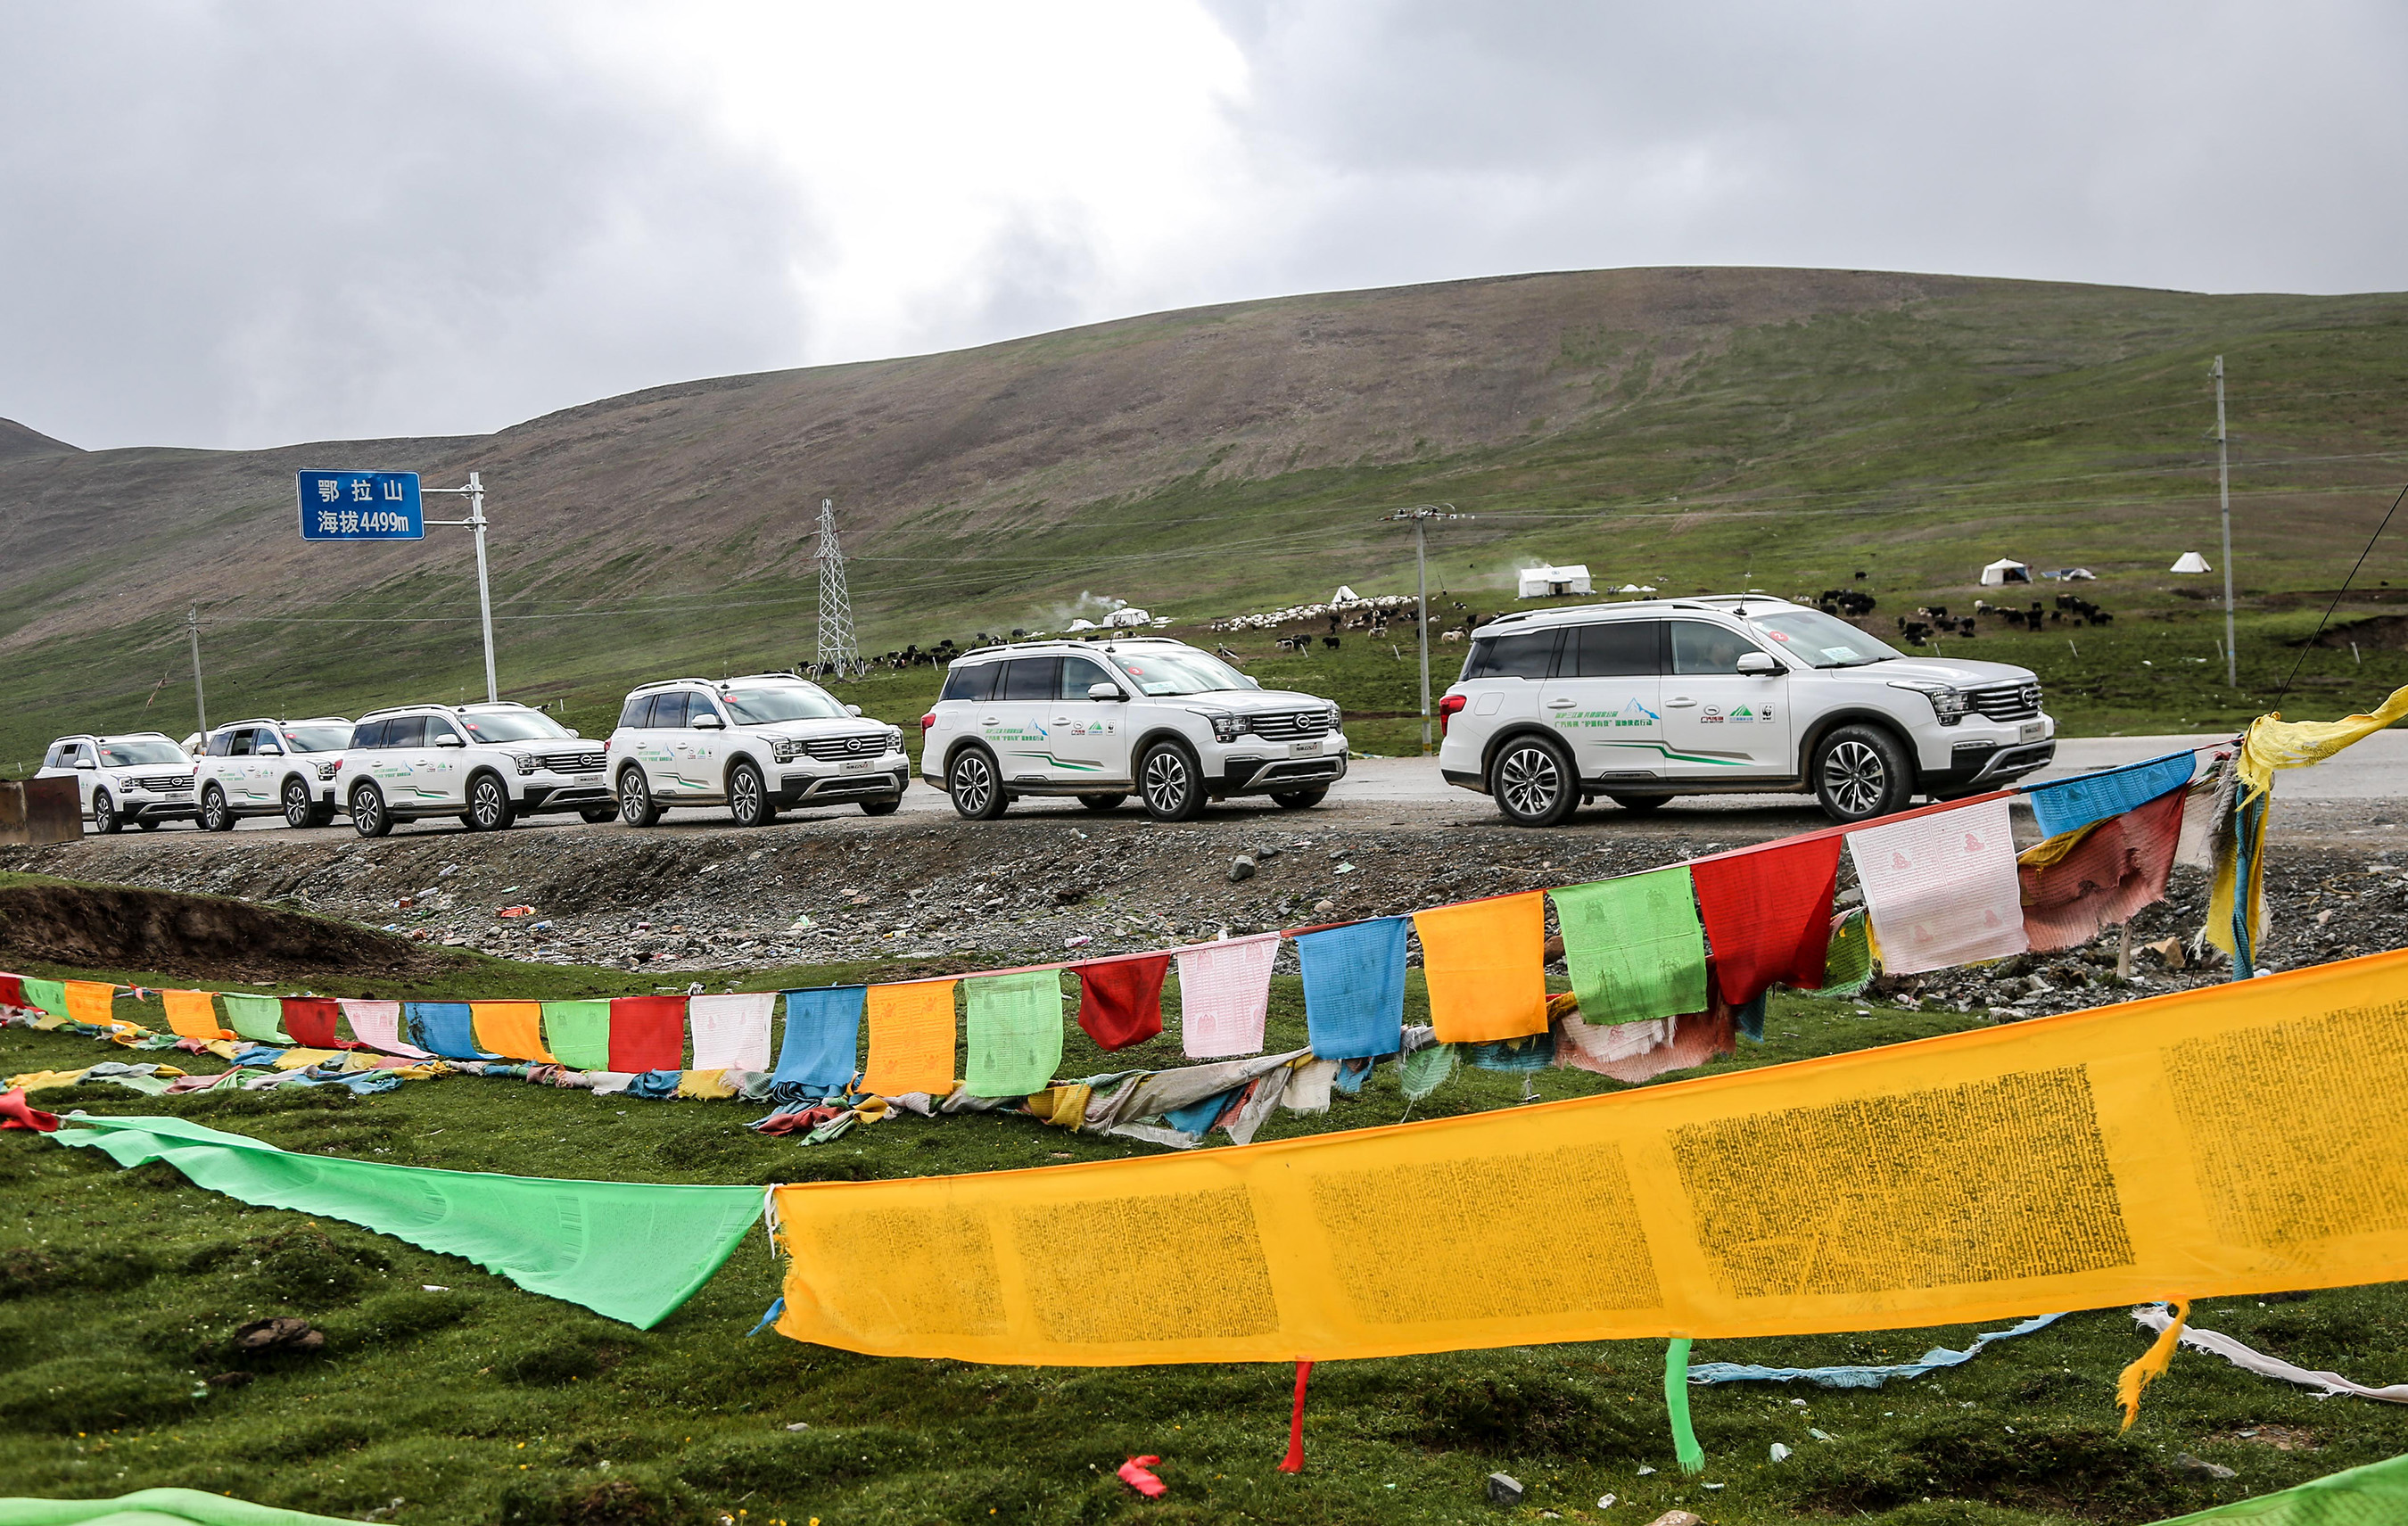 The robust and reliable GS8 vehicles were serving the staff in SNNR to protect the eco-environment